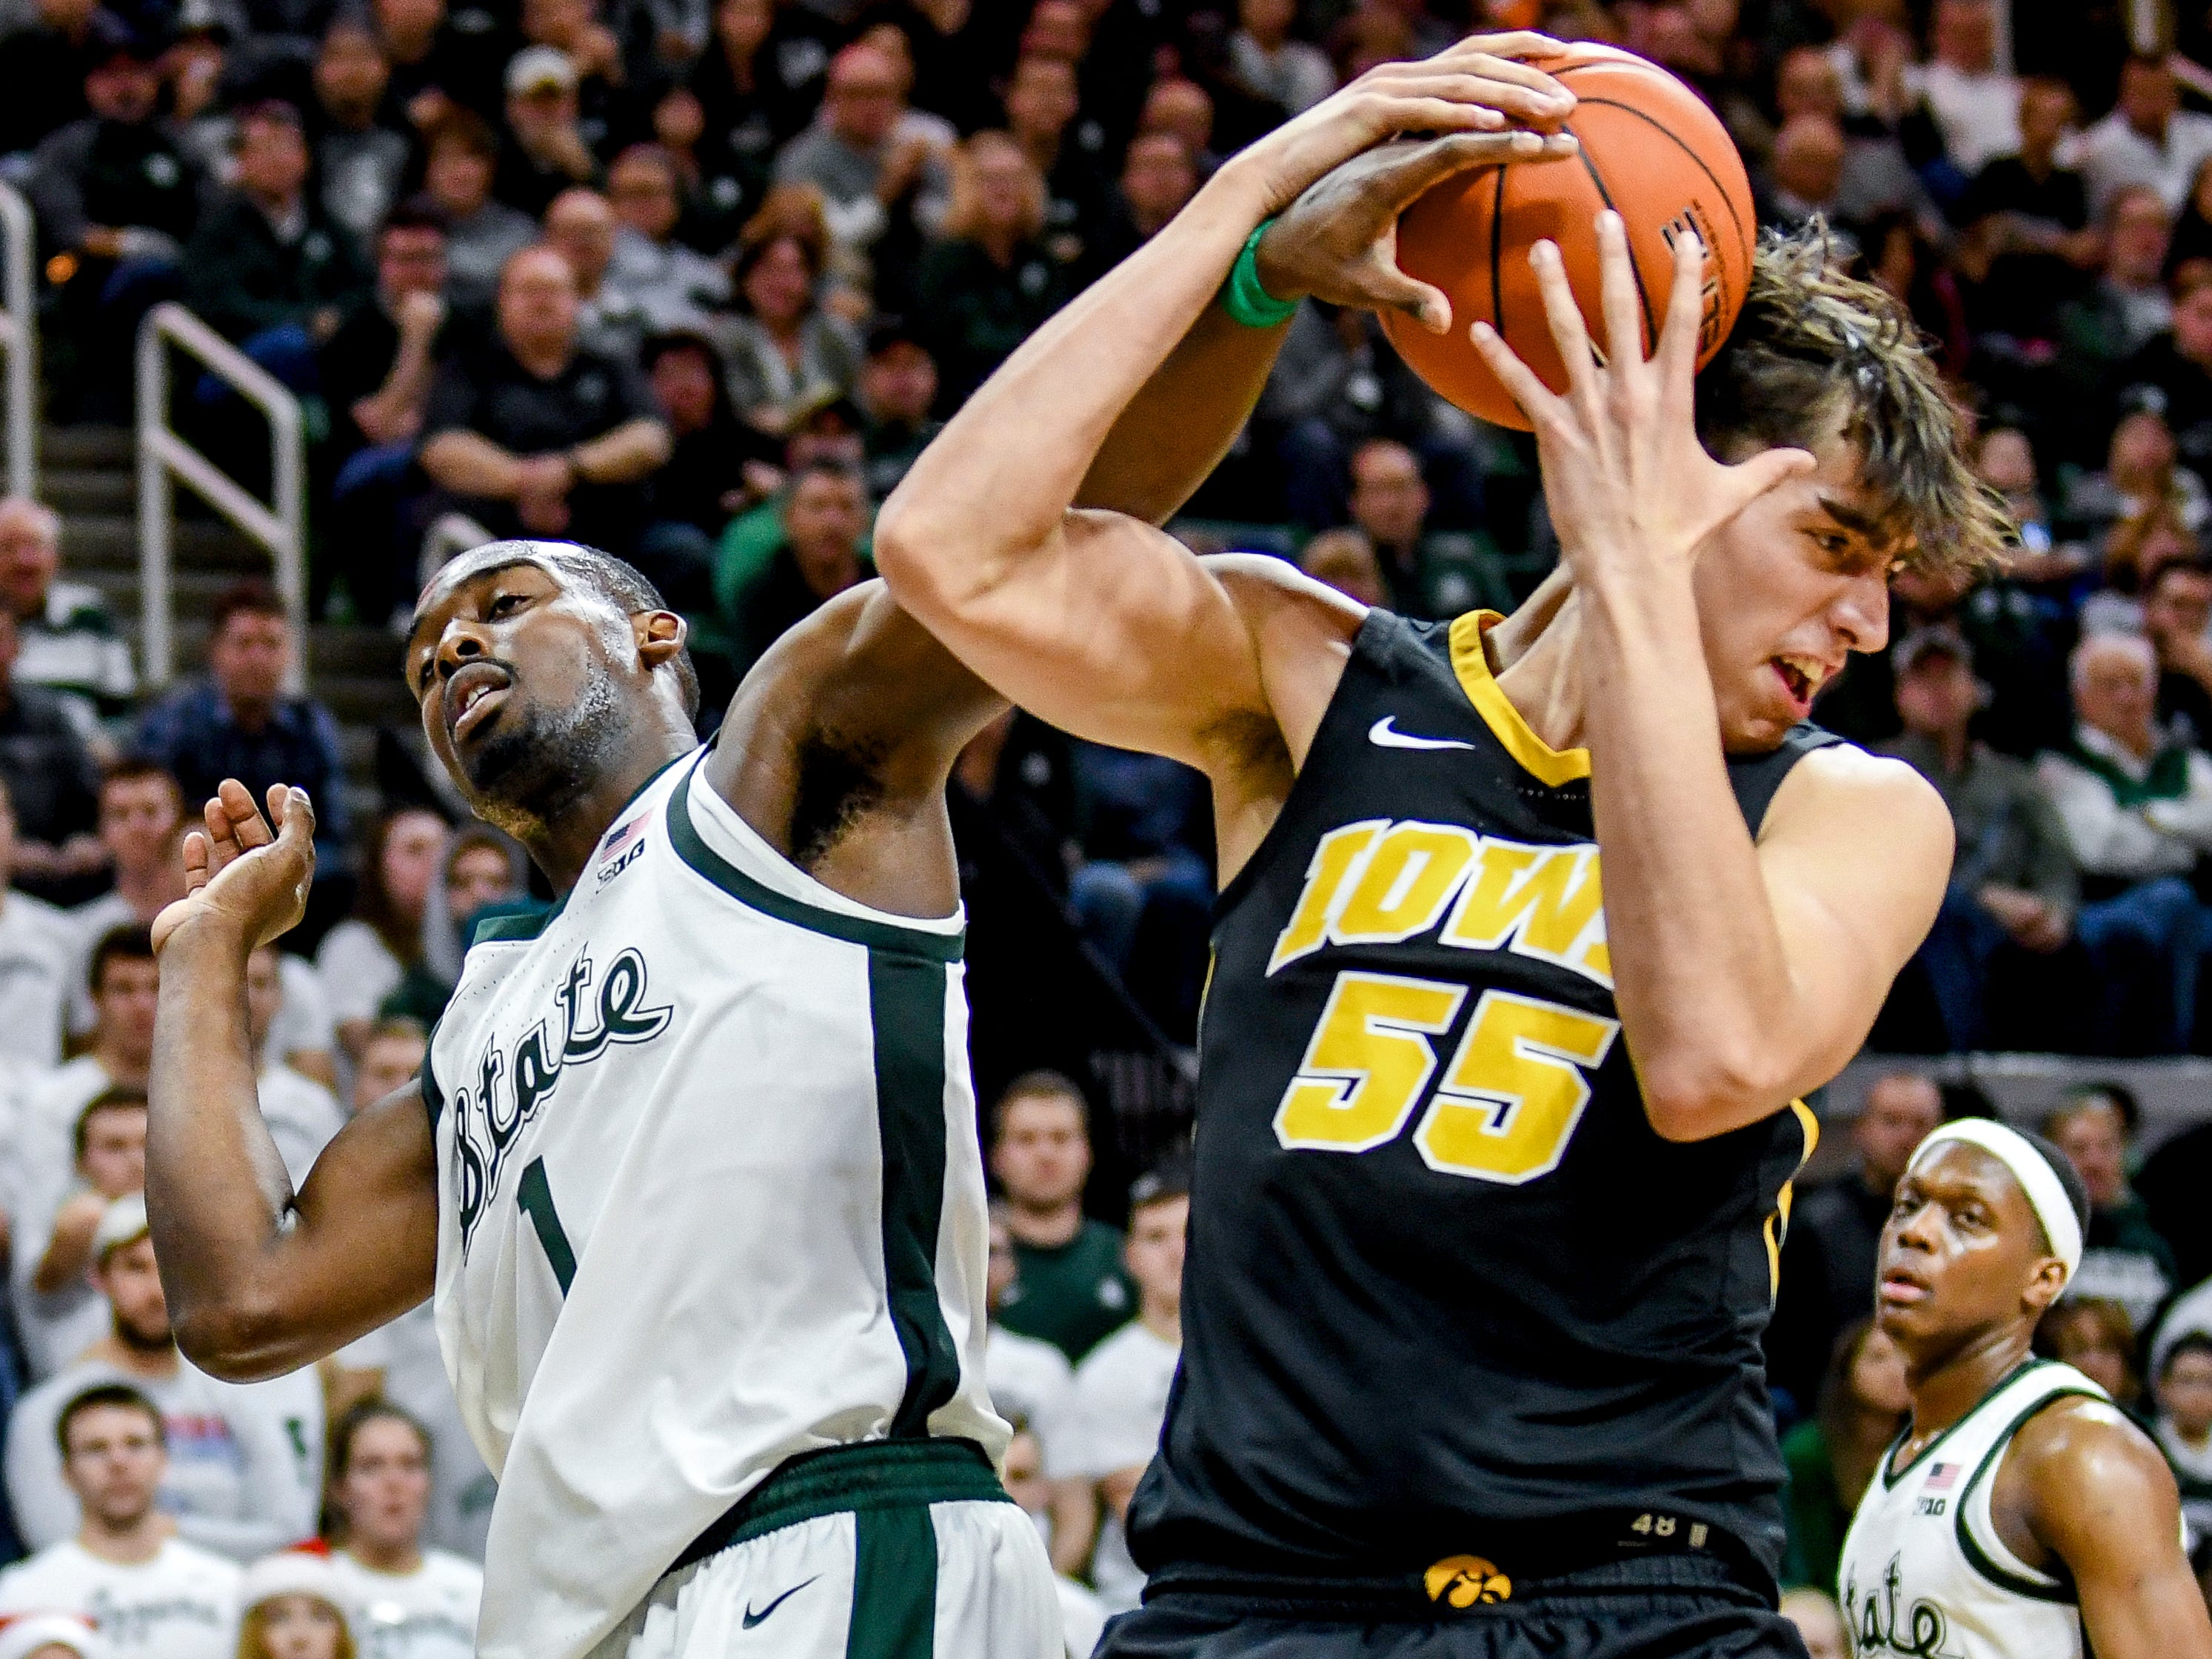 Michigan State's Joshua Langford, left, gets tangled up with Iowa's Luka Garza during the second half on Monday, Dec. 3, 2018, at the Breslin Center in East Lansing. Michigan State beat Iowa 90-68.